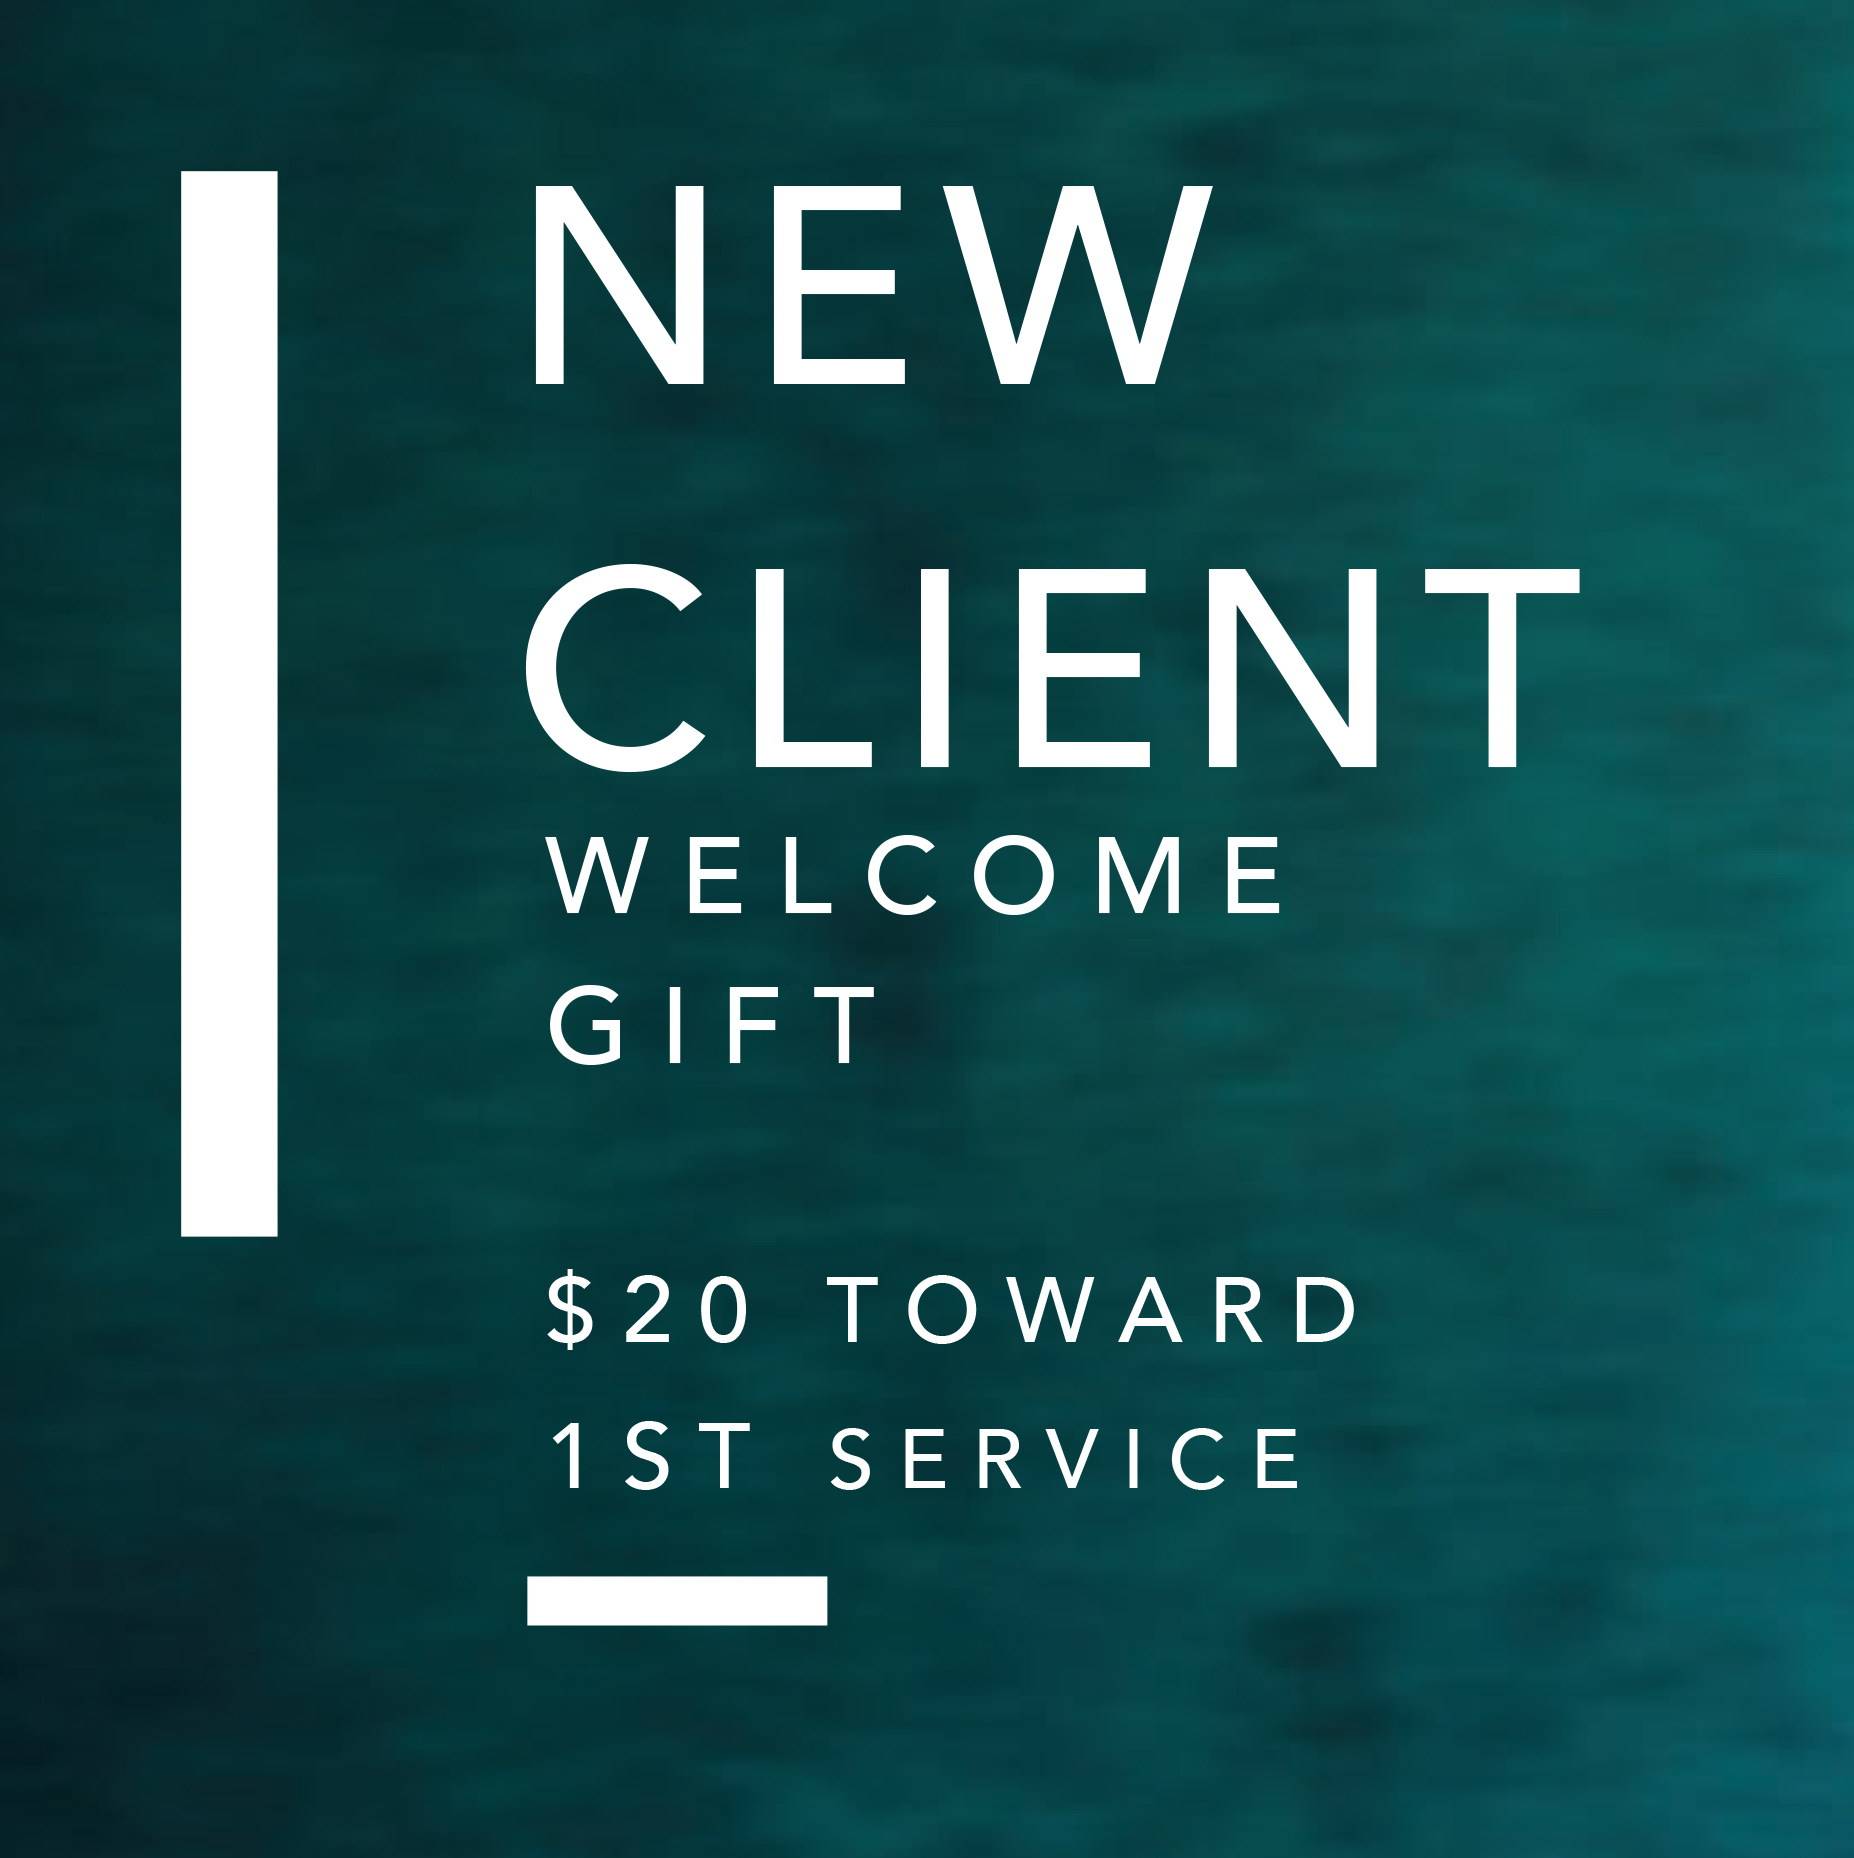 NEW CLIENT WELCOME water background